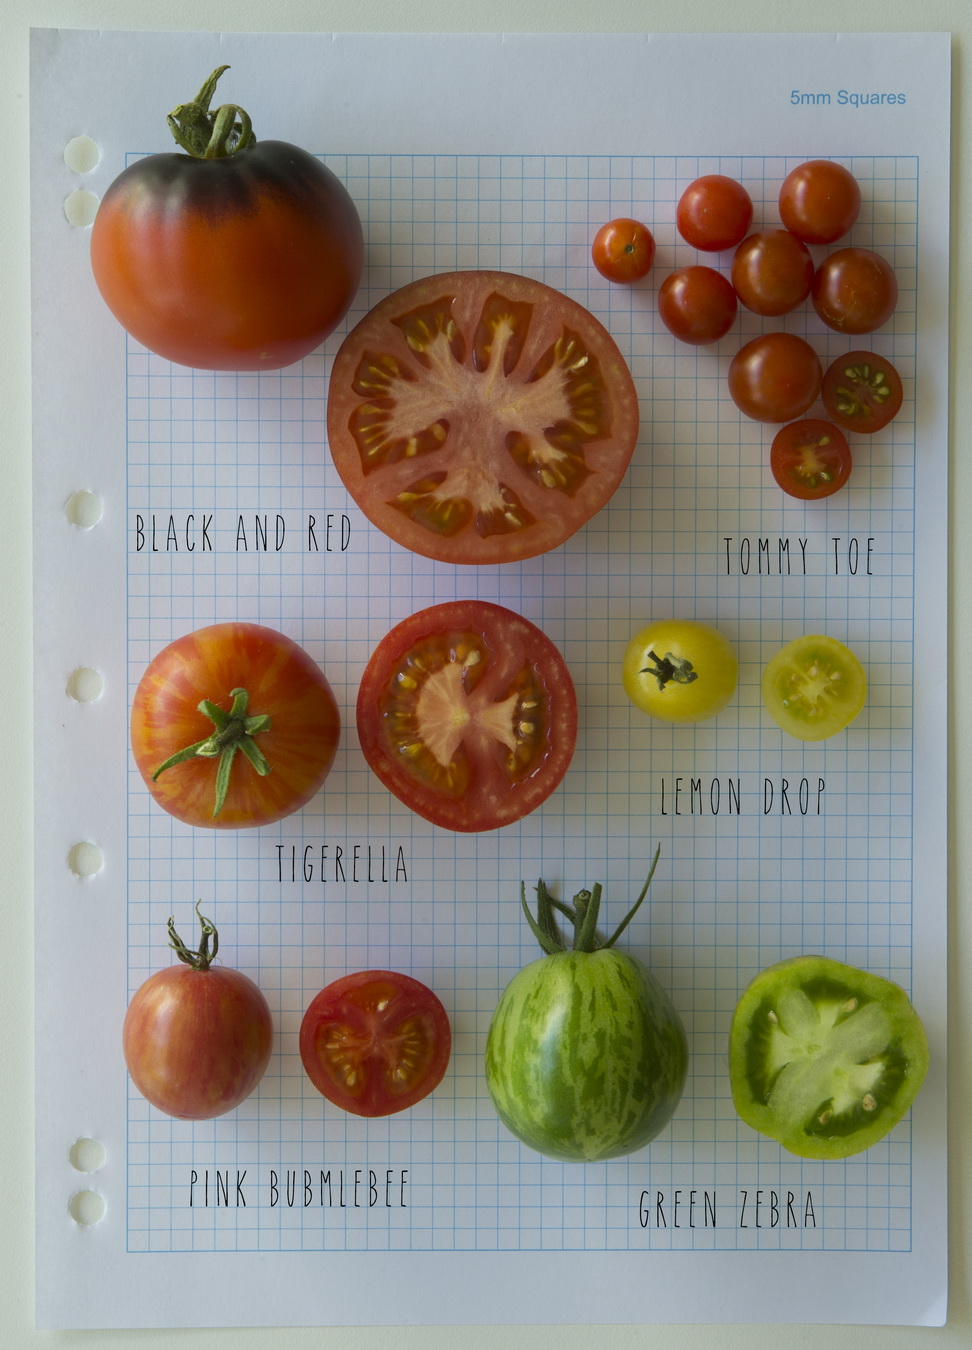 Homegrown Heirloom Tomatoes